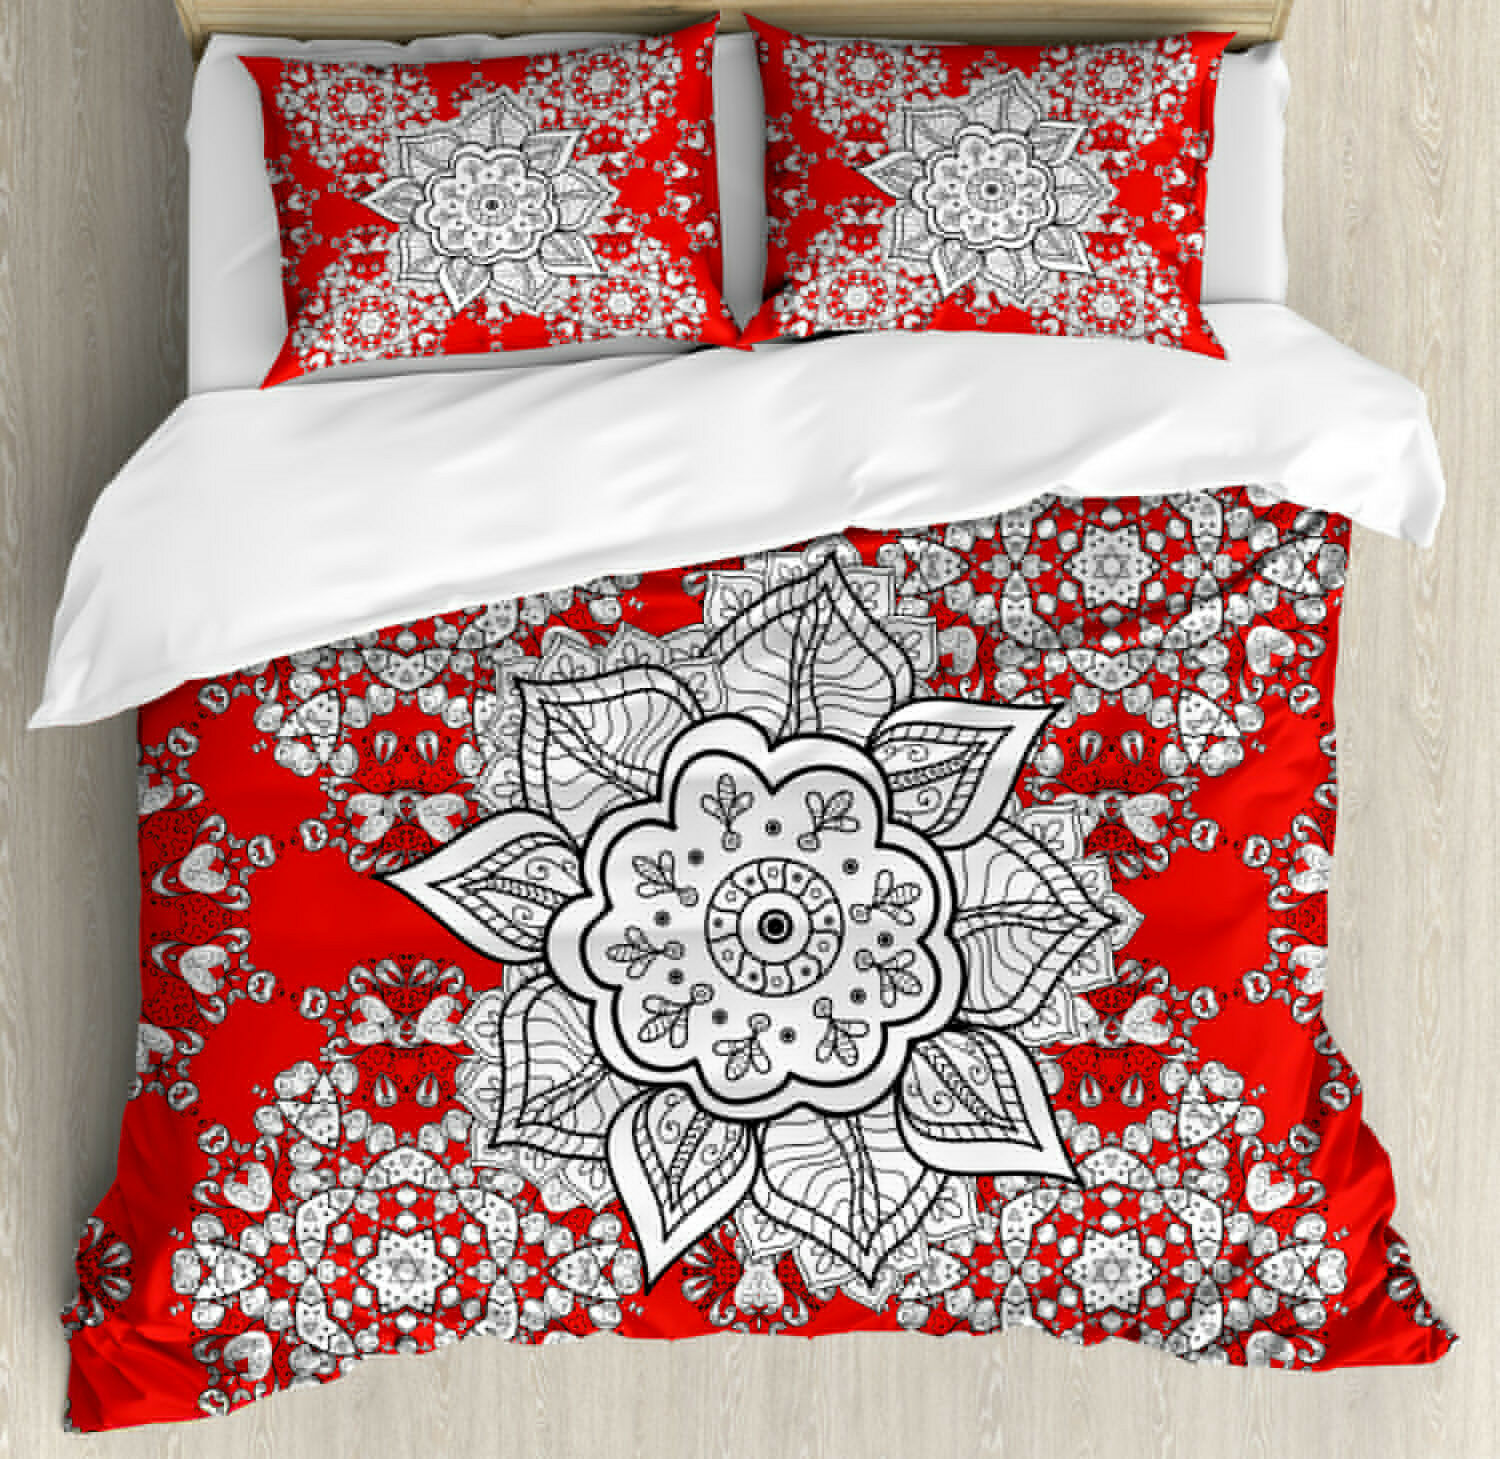 Red Mandala Duvet Cover Set with Pillow Shams Ethnic Doodle Print